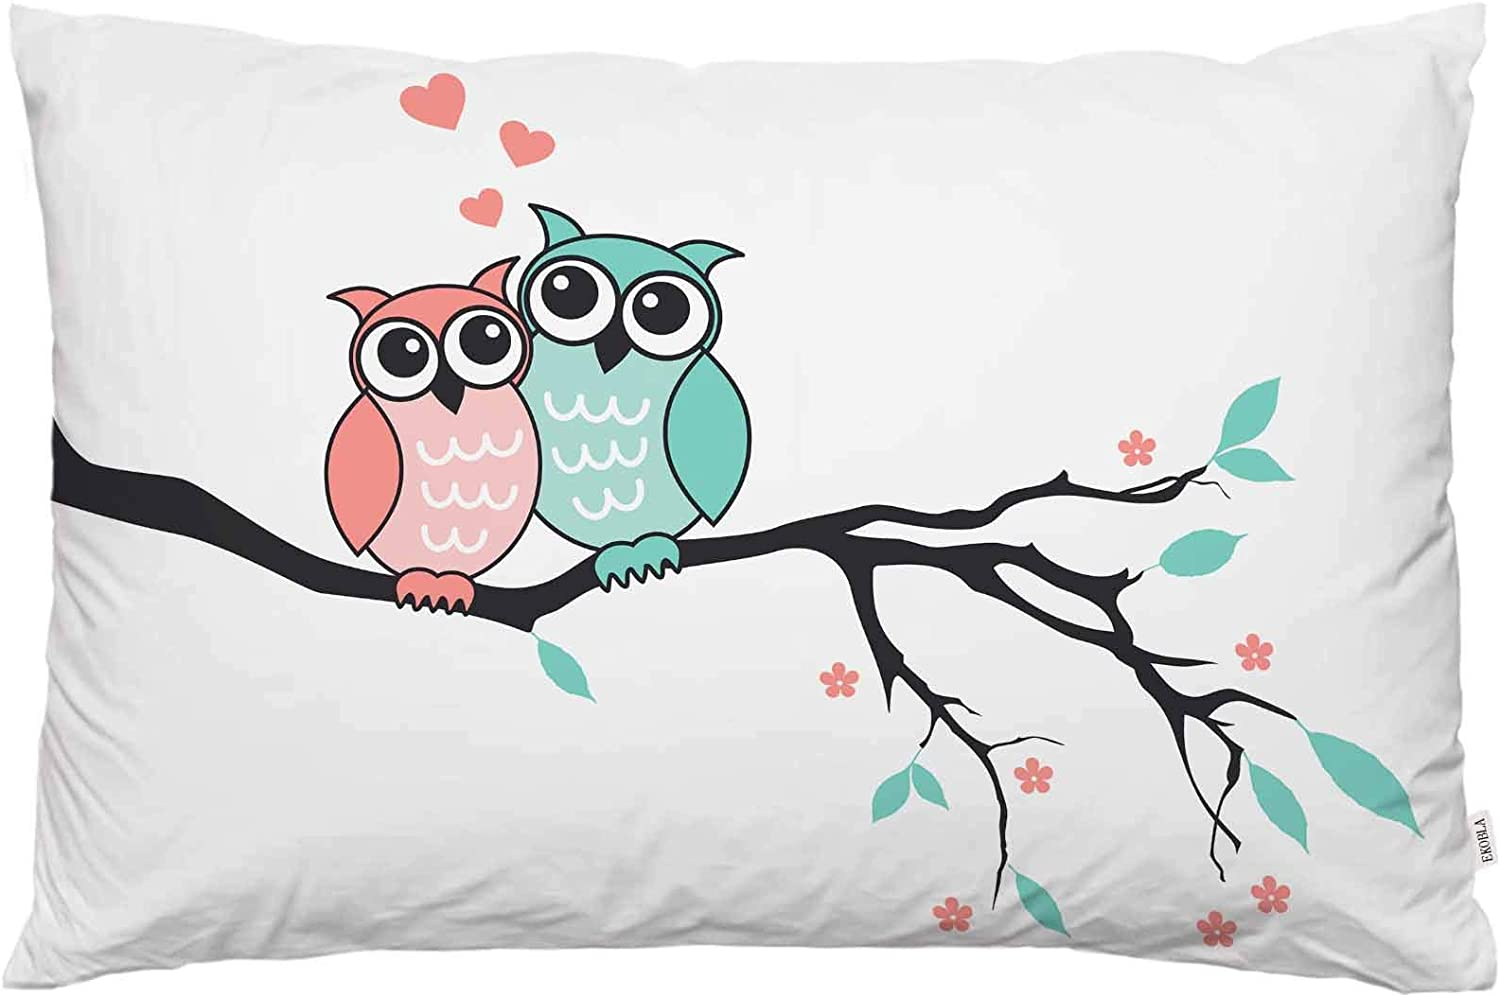 EKOBLA Throw Pillow Cover Owl Animal Cute Owls On Branch Tree Love Heart Abstract Art Flowers Leaves Big Eyes Wild Decor Lumbar Pillow Case Cushion for Sofa Couch Bed Standard Queen Size 20x30 Inch